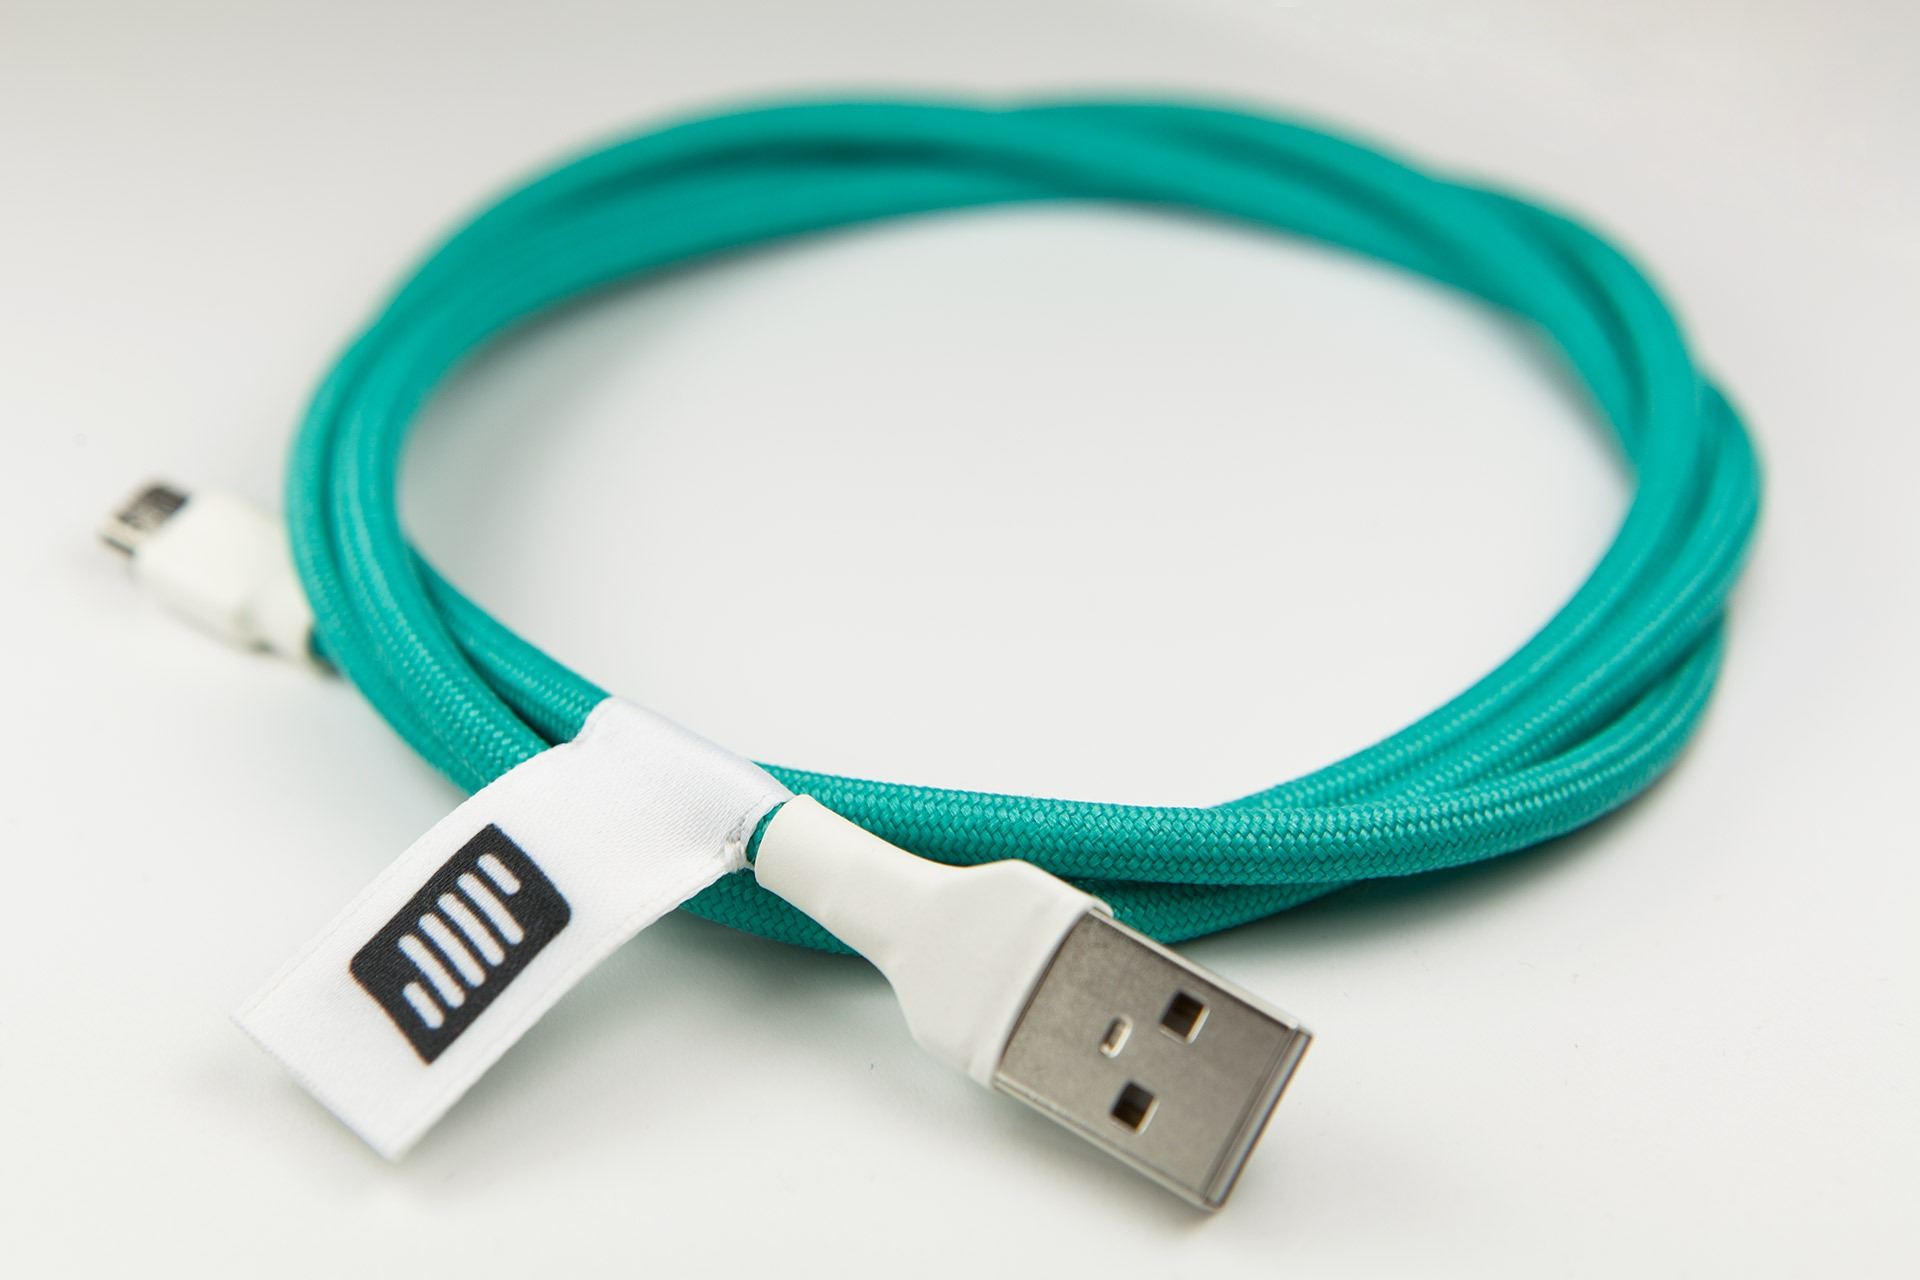 Clark Kable | Custom made USB cables for mechanical keyboard enthusiasts